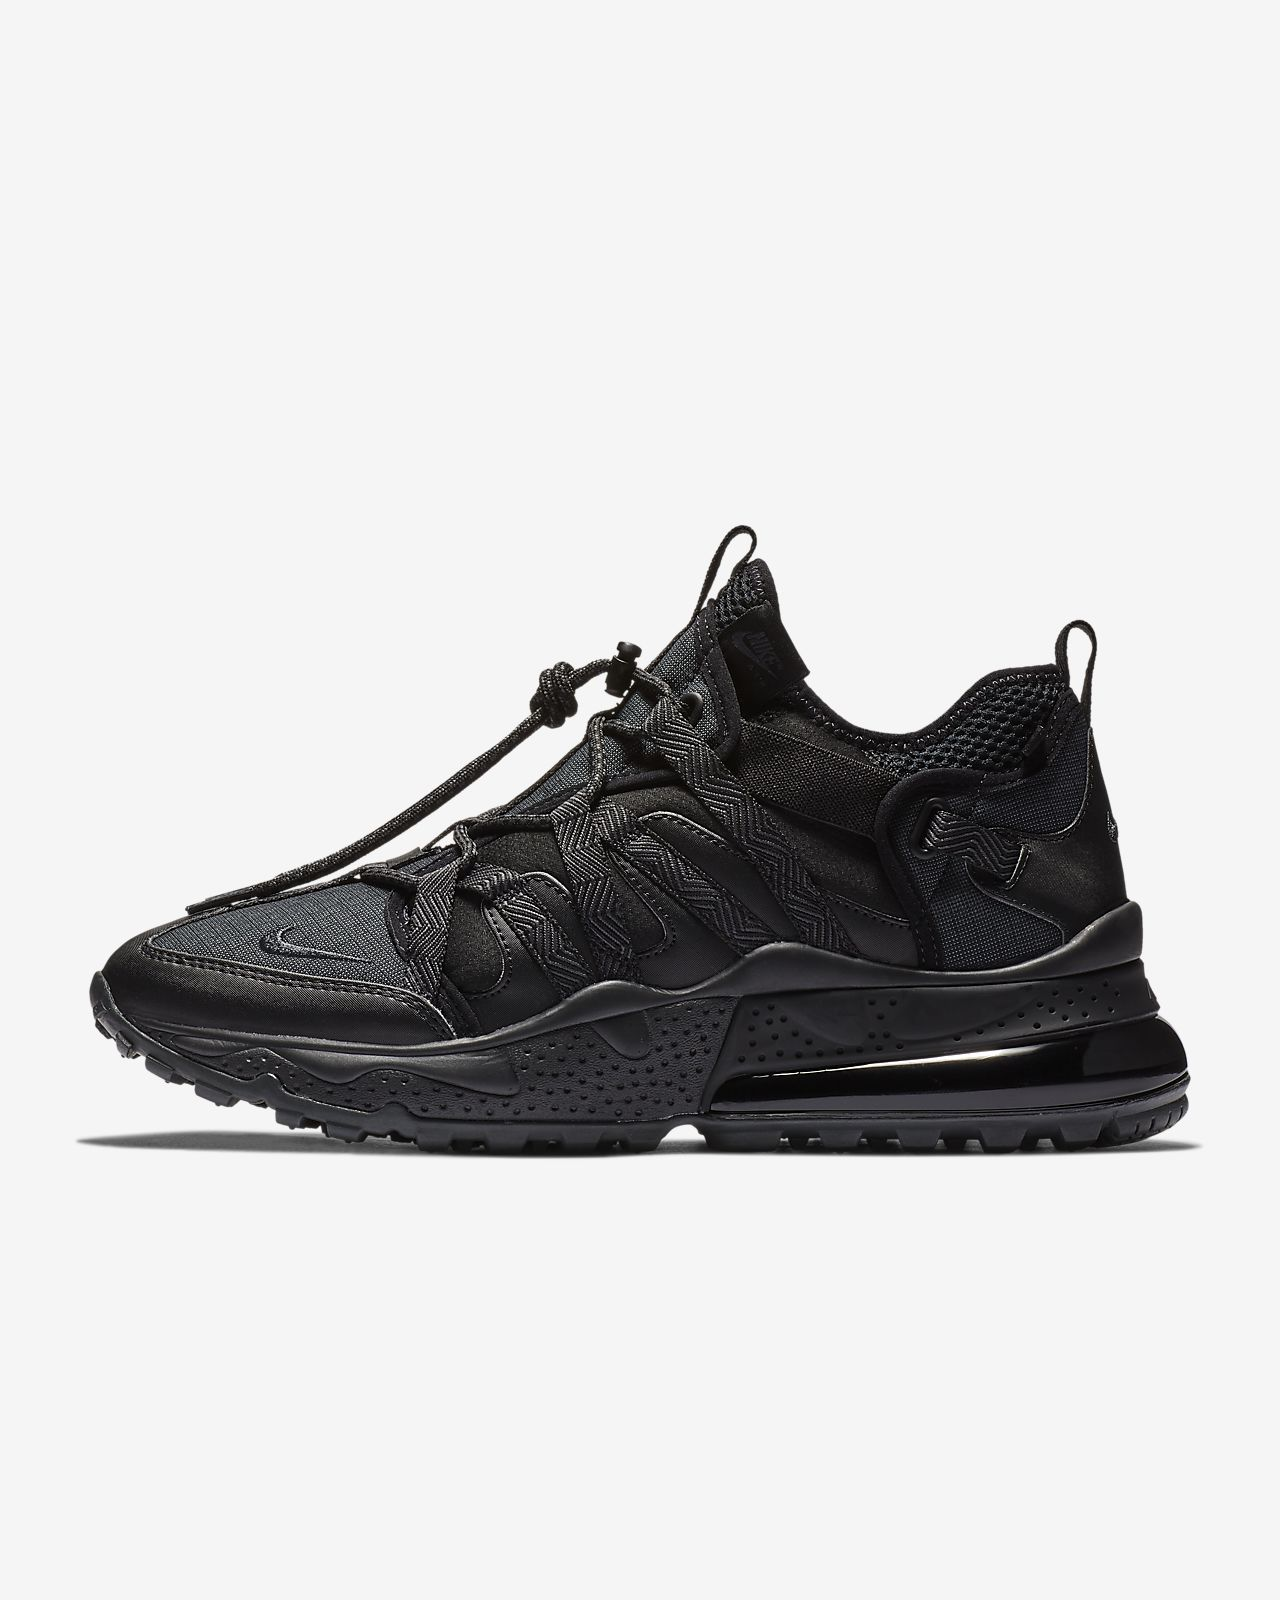 78e0de4a9 Nike Air Max 270 Bowfin Men's Shoe. Nike.com